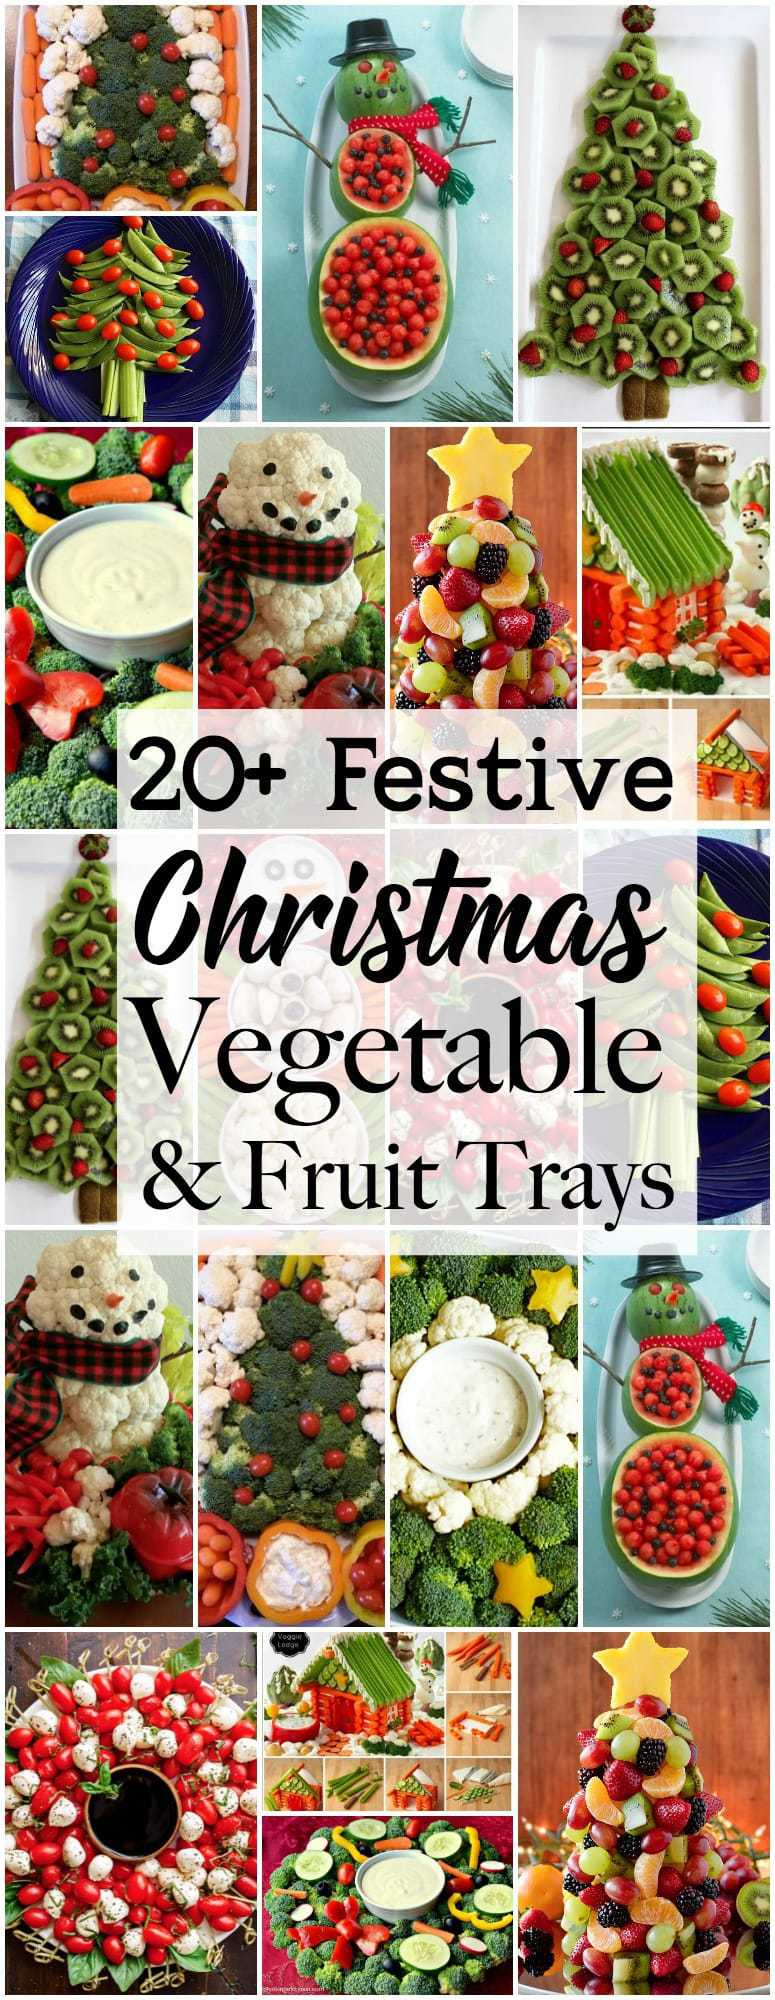 Holiday Vegetable Trays are festive, easy to make, healthy & delicious! Add fun to your Christmas table with one of these great vegetable and fruit tray ideas. Easy #Christmas #vegetable #fruit #holiday ideas from Butter With A Side of Bread